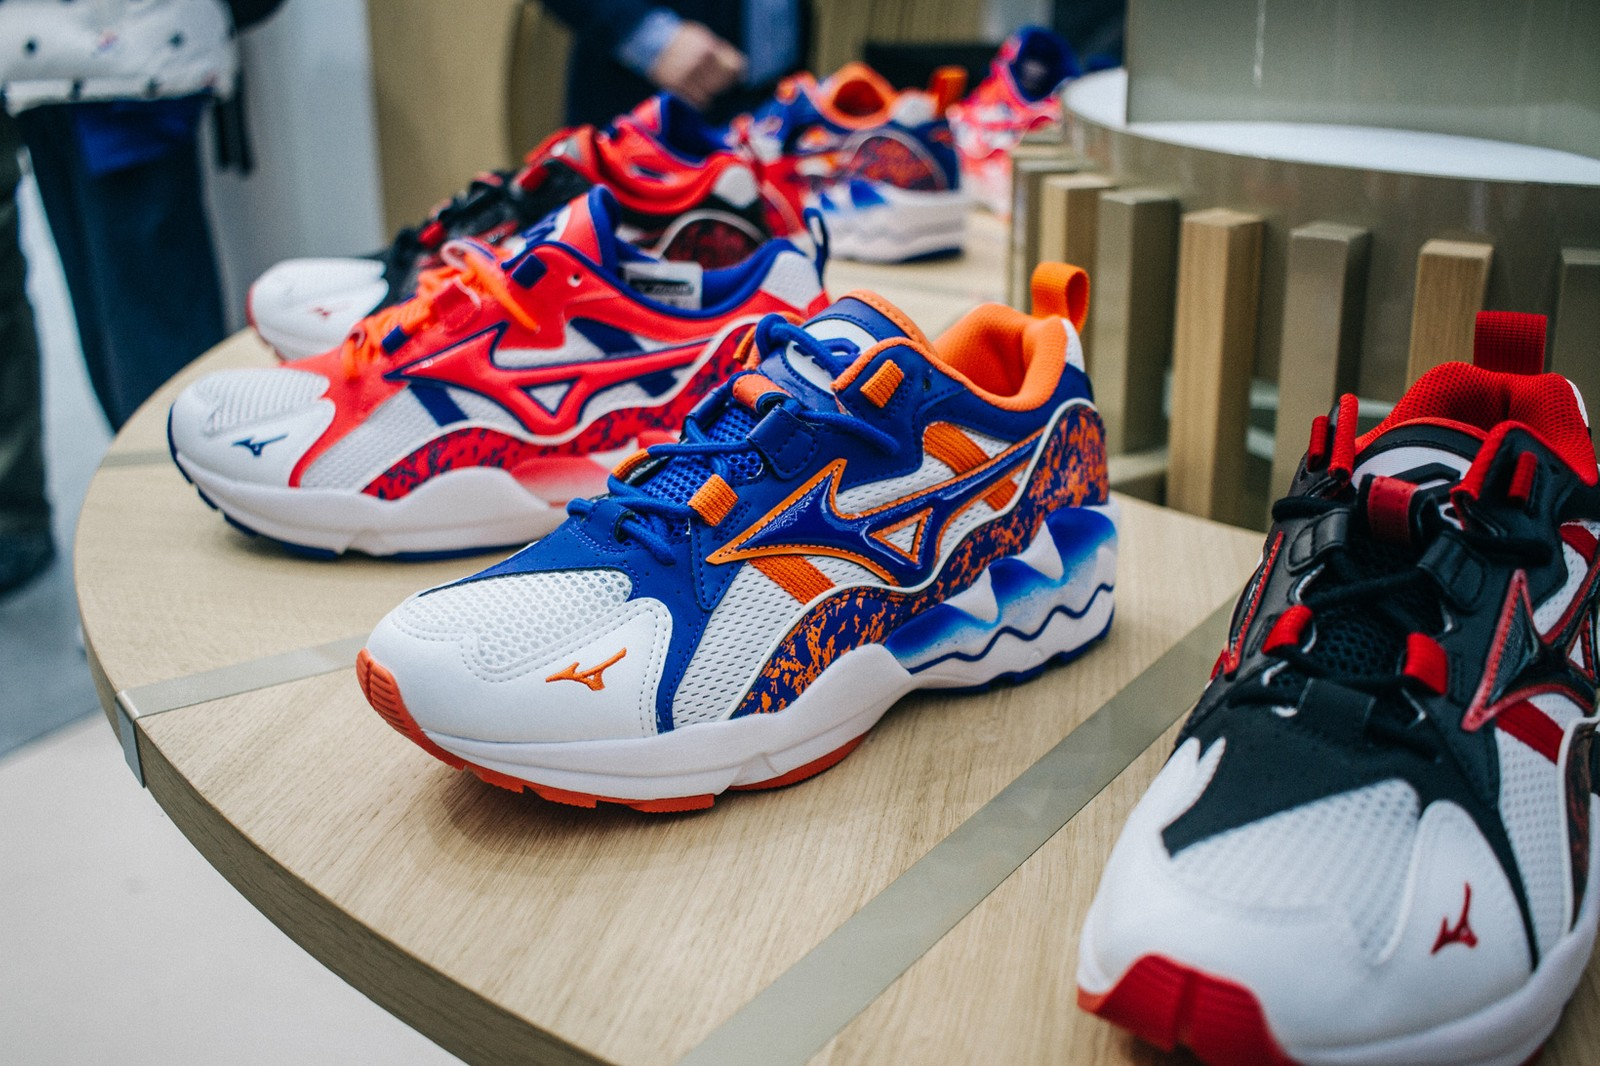 Mizuno 90s Athletic Sneaker Collection Launch Paris Shinzo DJ Snake Party Event